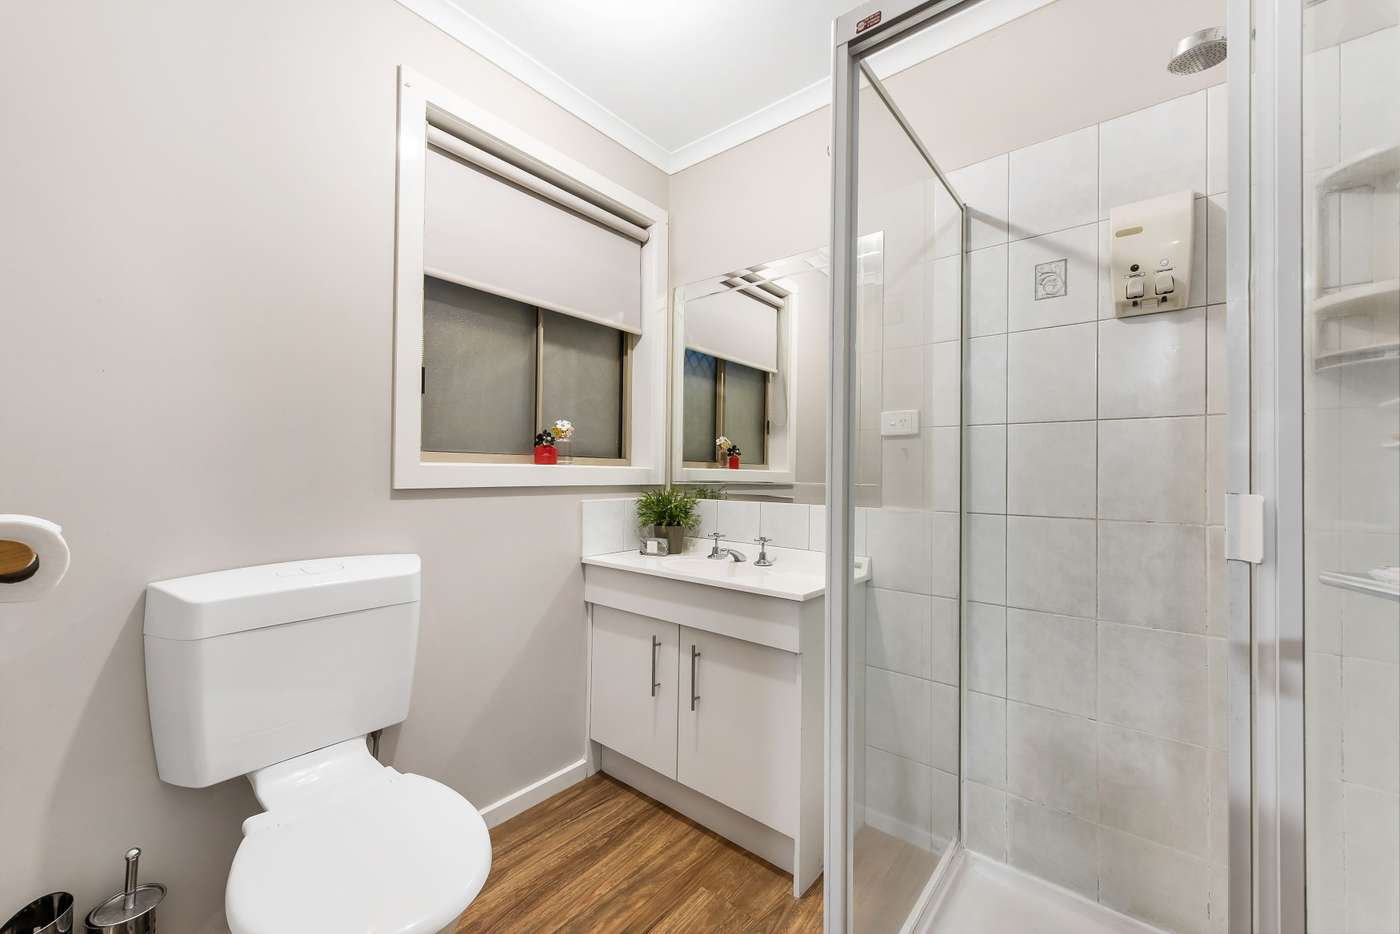 Fifth view of Homely house listing, 9 Cooper Court, Delahey VIC 3037